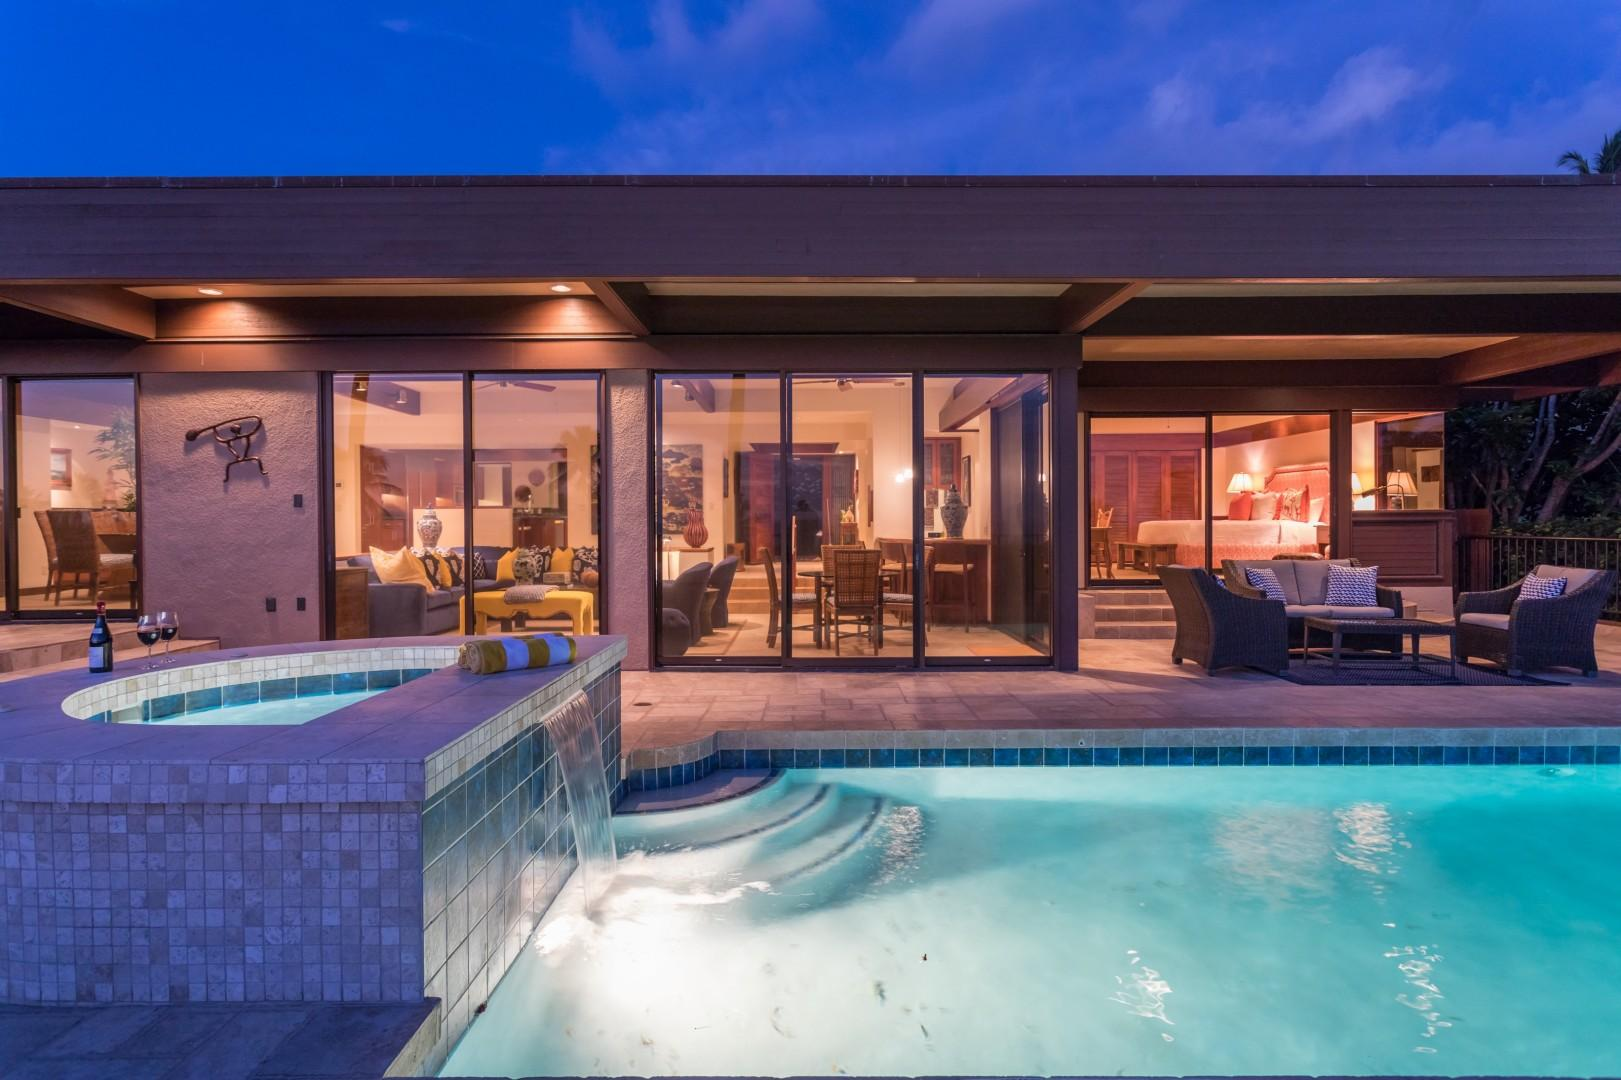 Waterfall jacuzzi at sunset, looking back through sliding glass doors to warmly lit home.